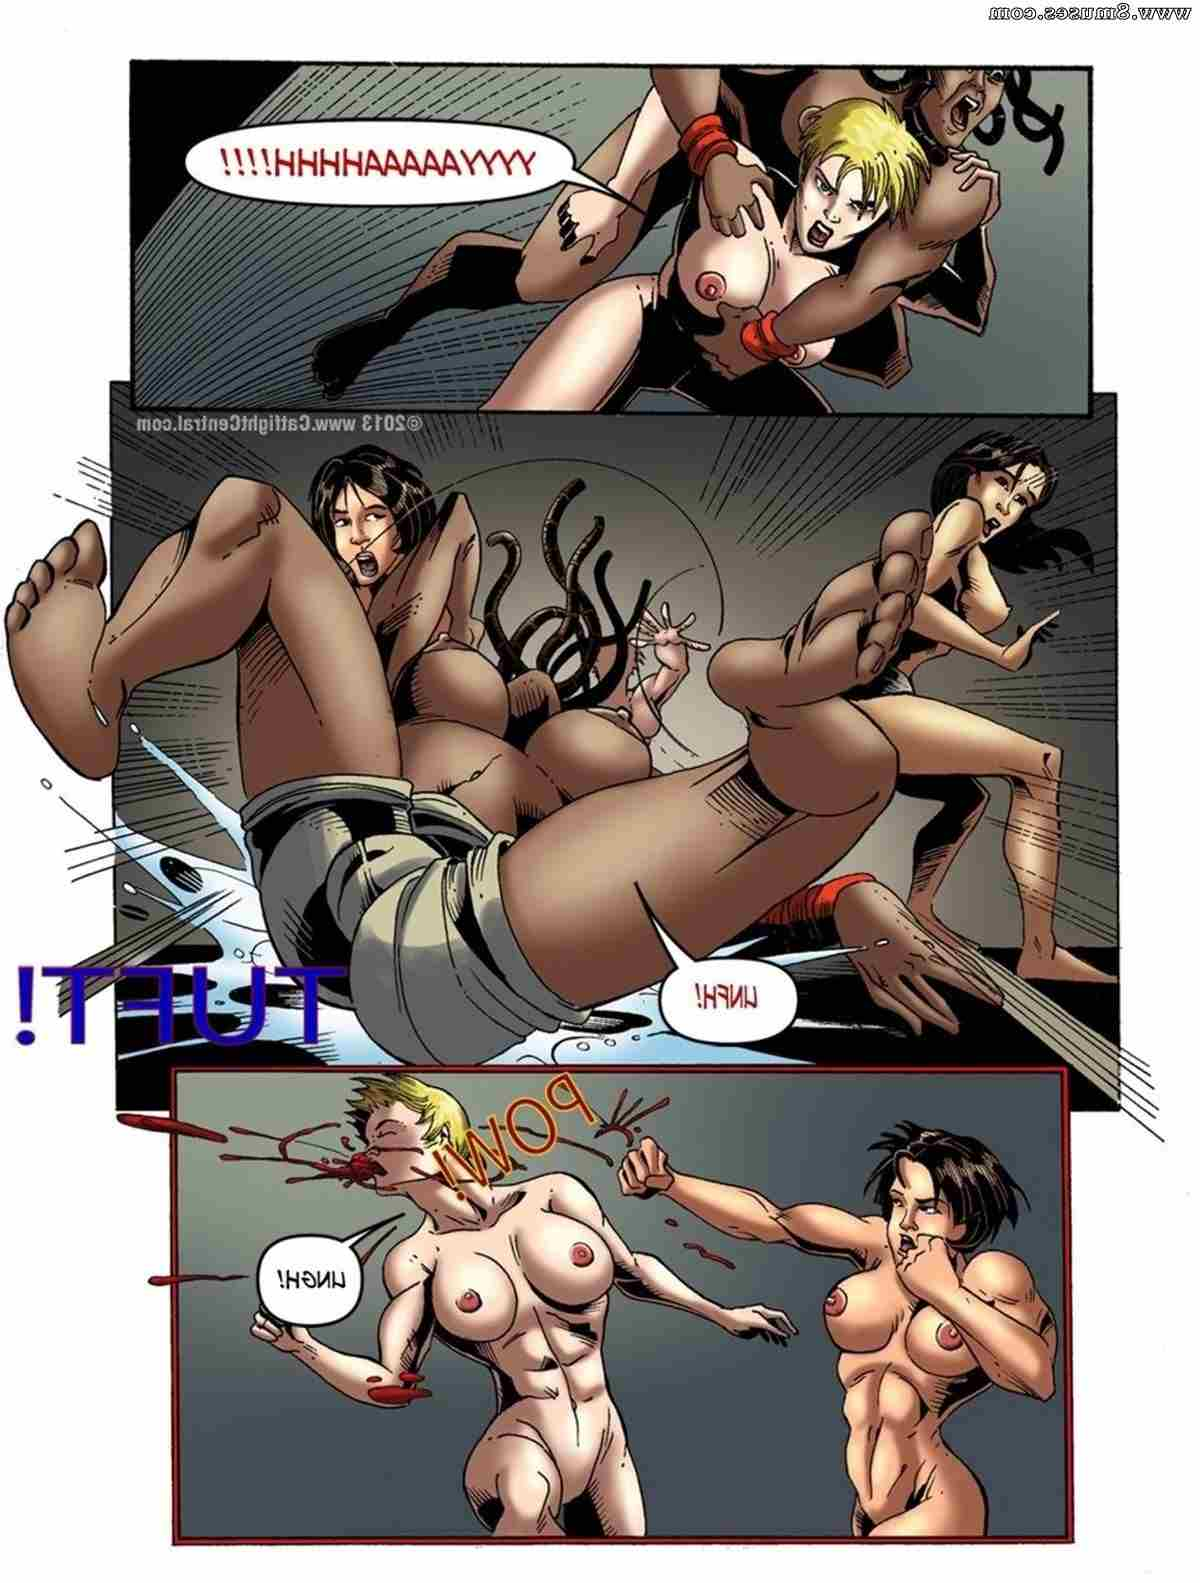 Central-Comics/Catfight-Central/Prison-Bitches Prison_Bitches__8muses_-_Sex_and_Porn_Comics_18.jpg